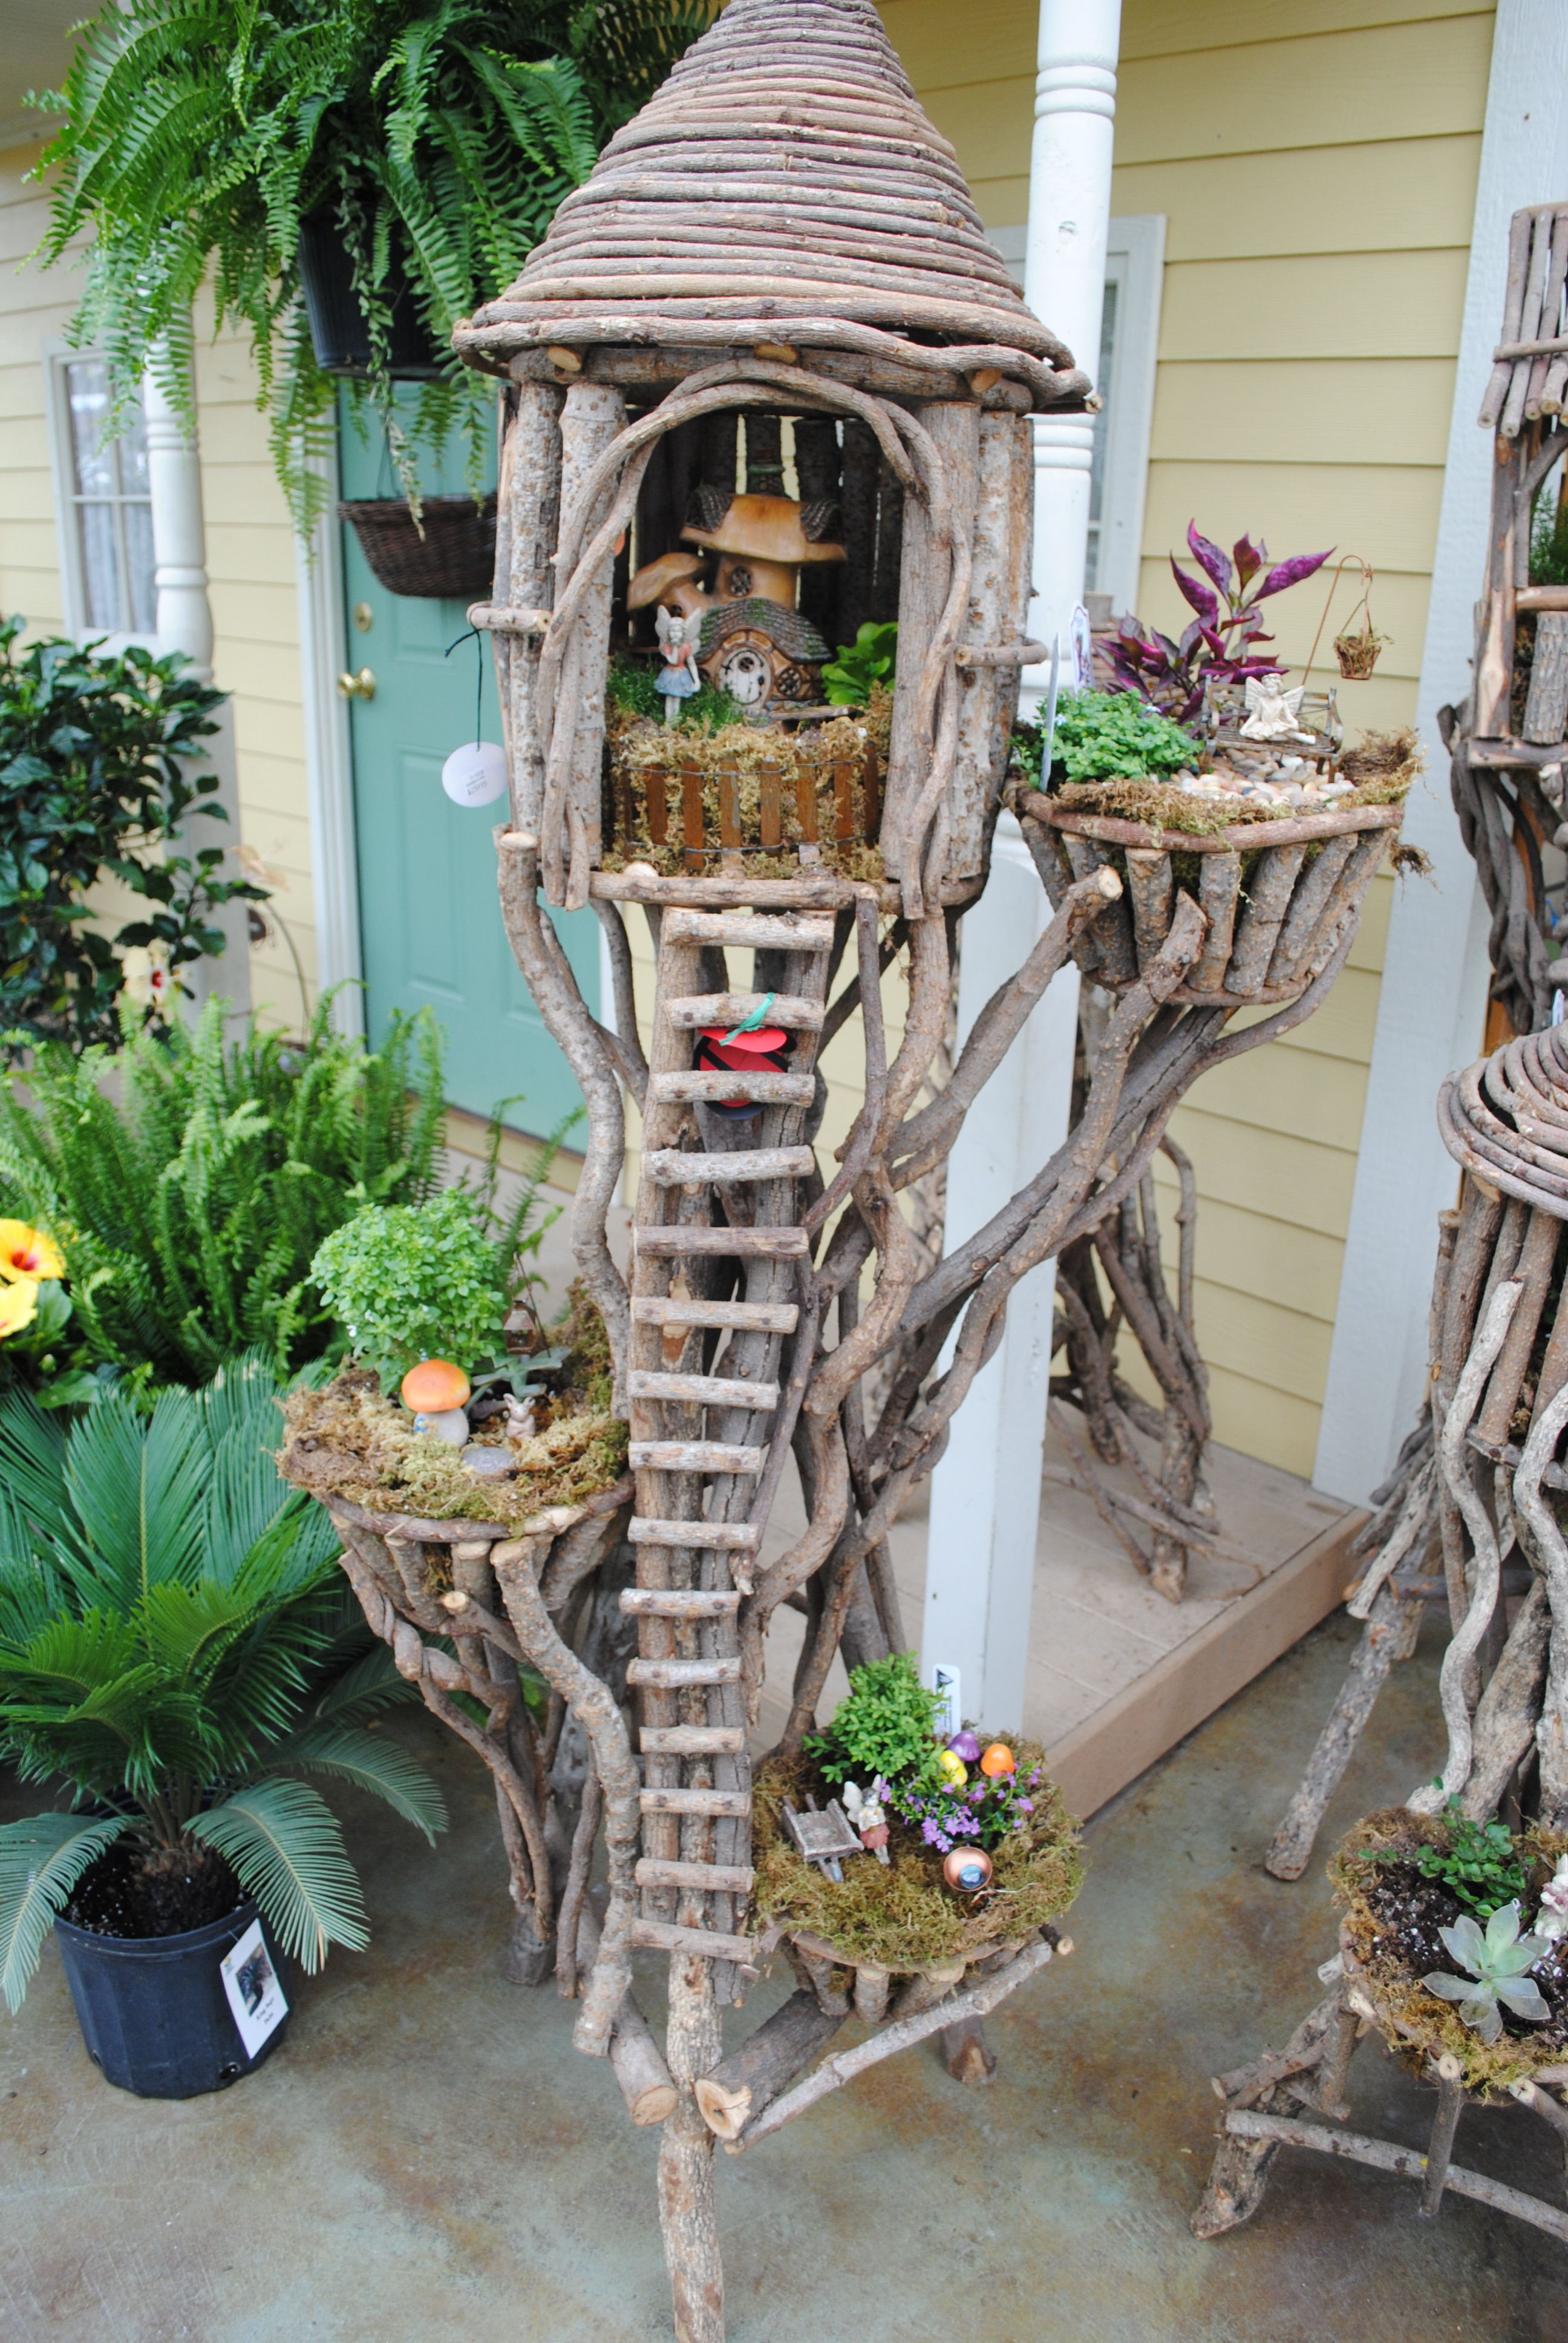 I have so much driftwood i should assemble a fairy tree house like this inspiration